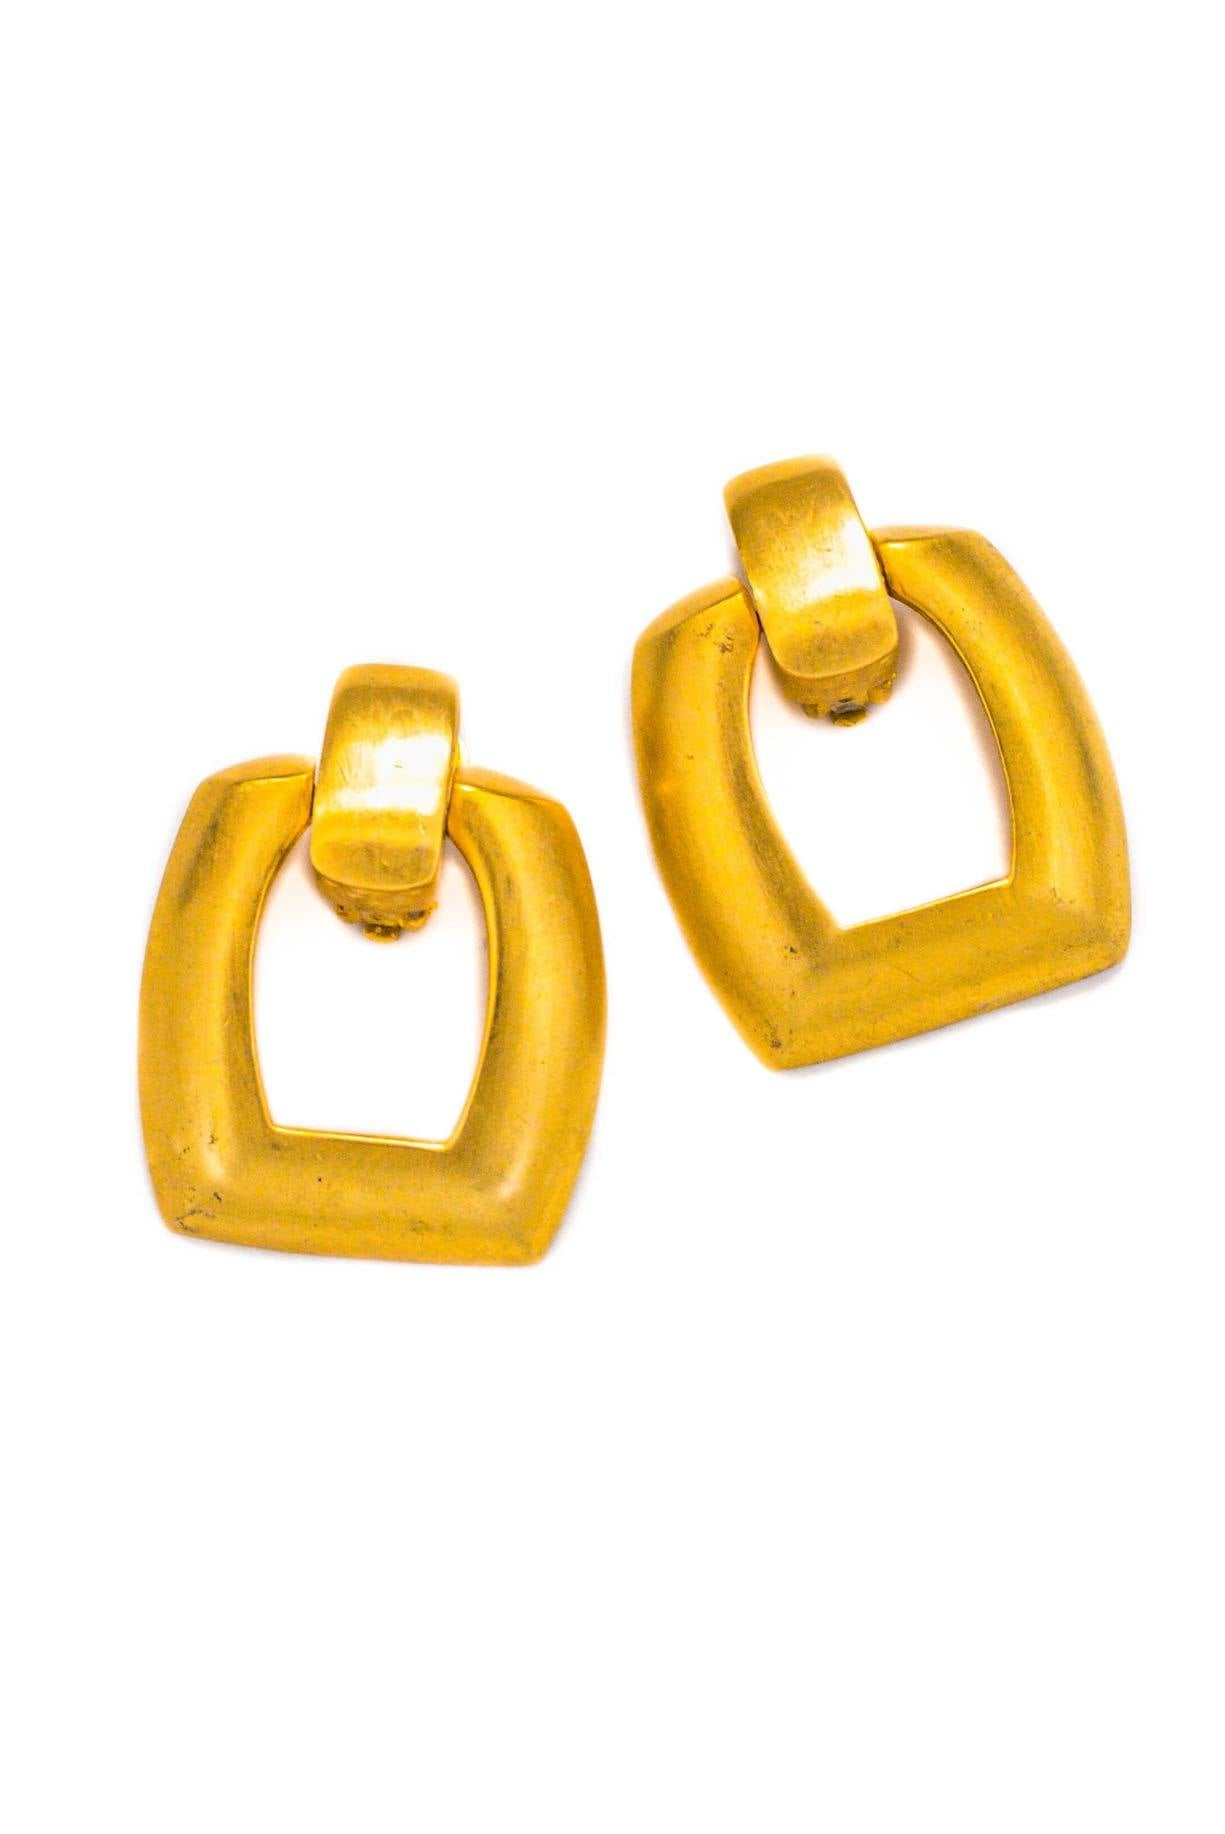 Vintage Jumbo Door Knocker Clip-on Earrings from Sweet and Spark